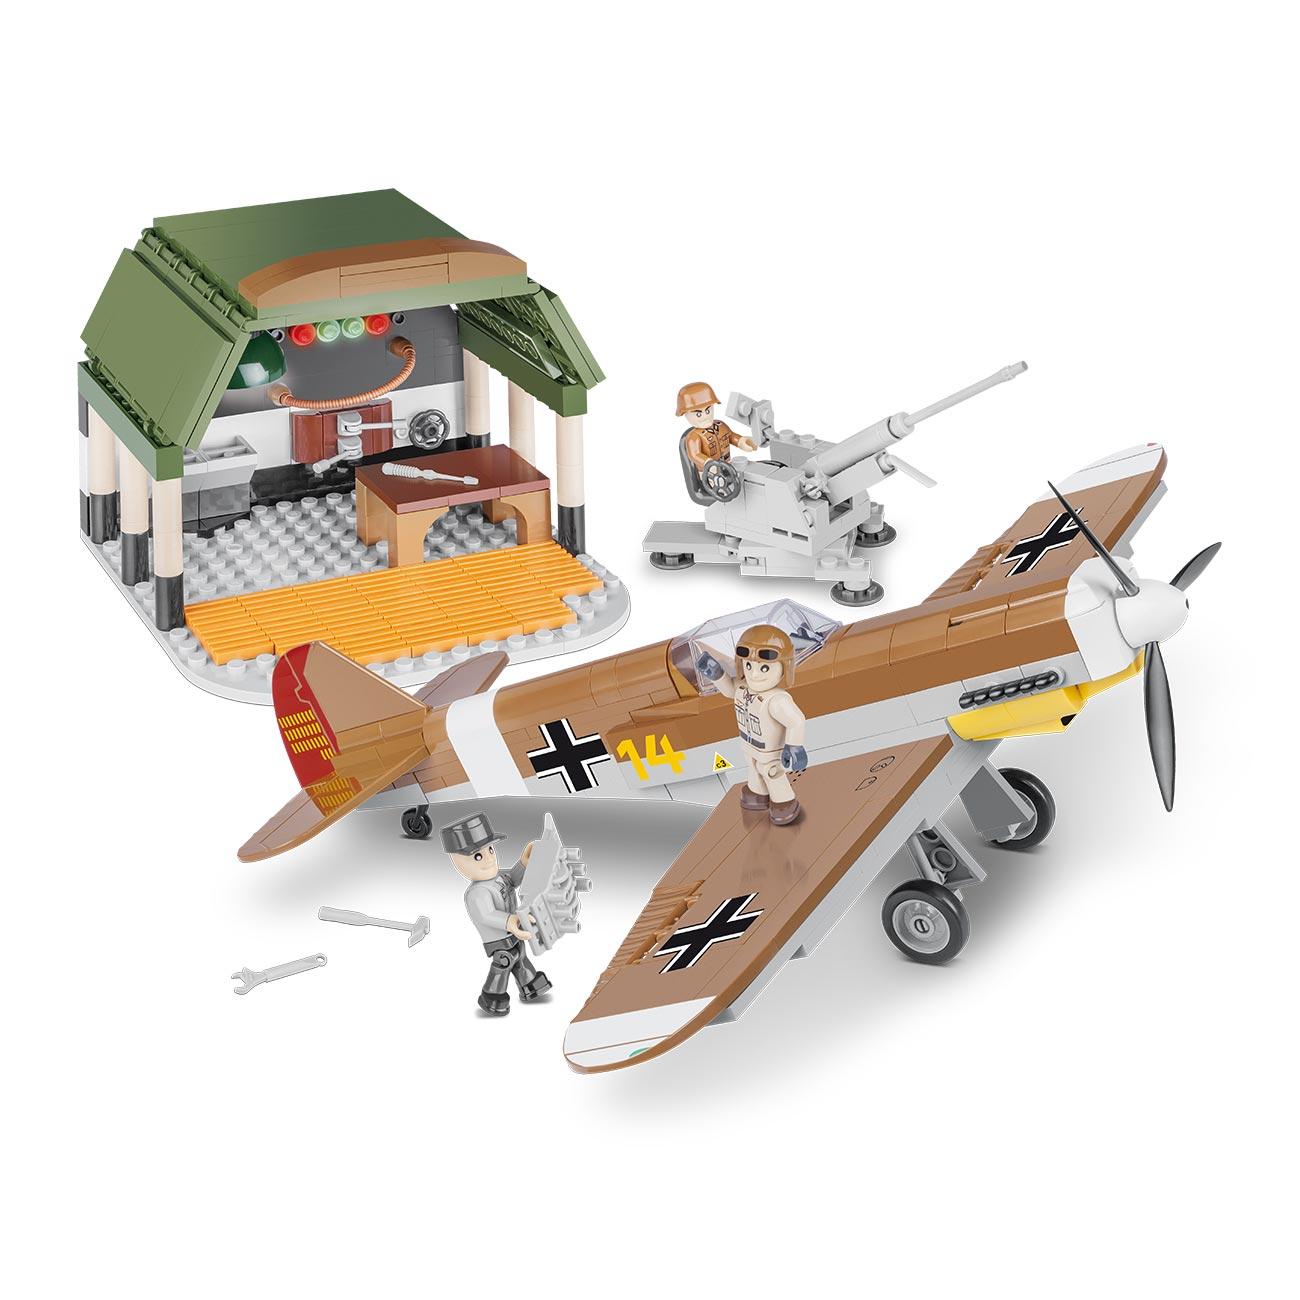 Cobi Historical Collection Bausatz Flugzeug BF 109 African Mission 500 Teile 5544 0